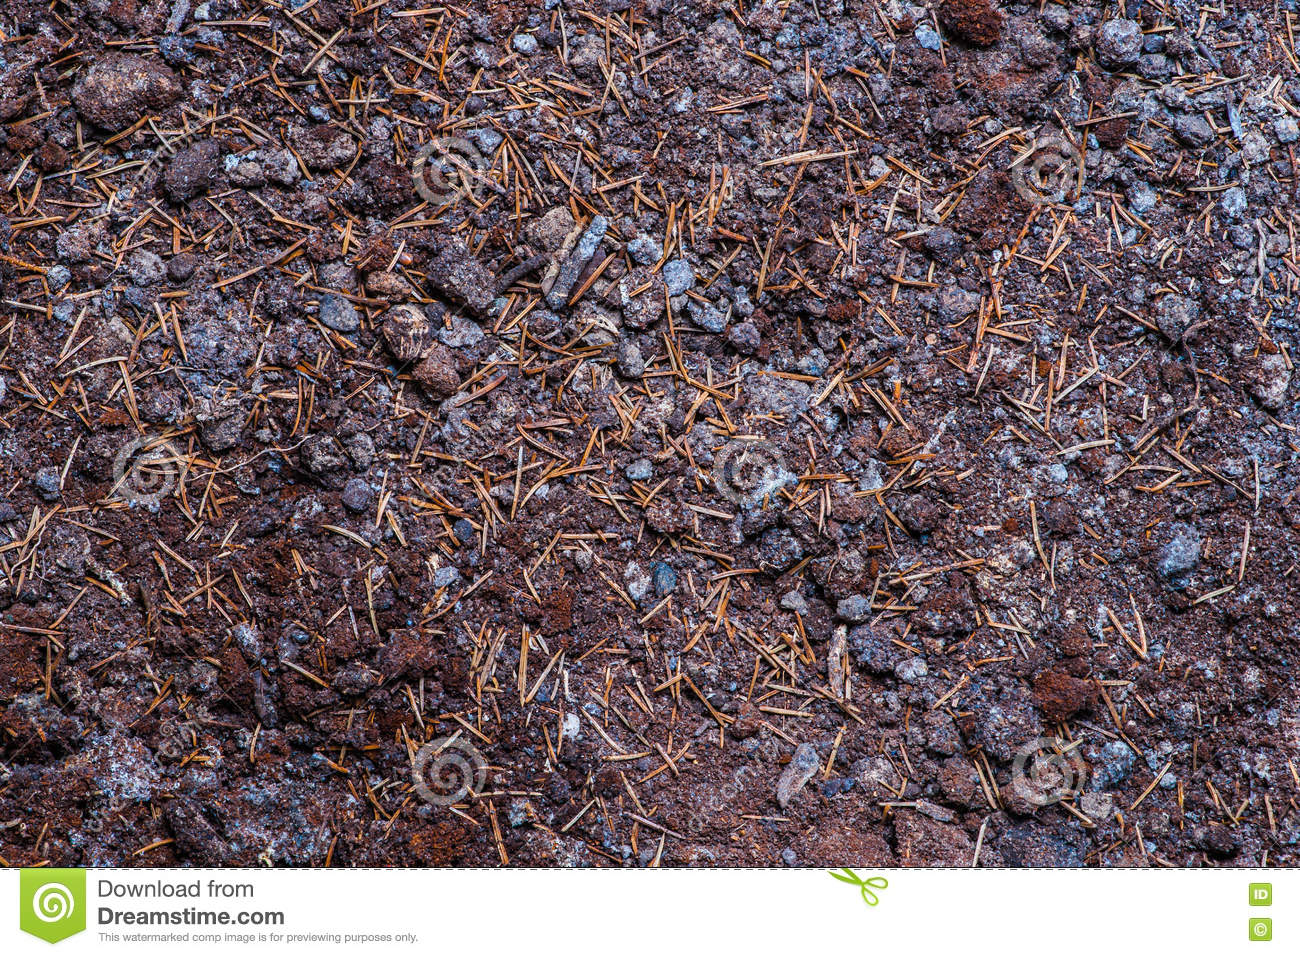 Black earth soil stock photo image 77564538 for What 5 materials make up soil